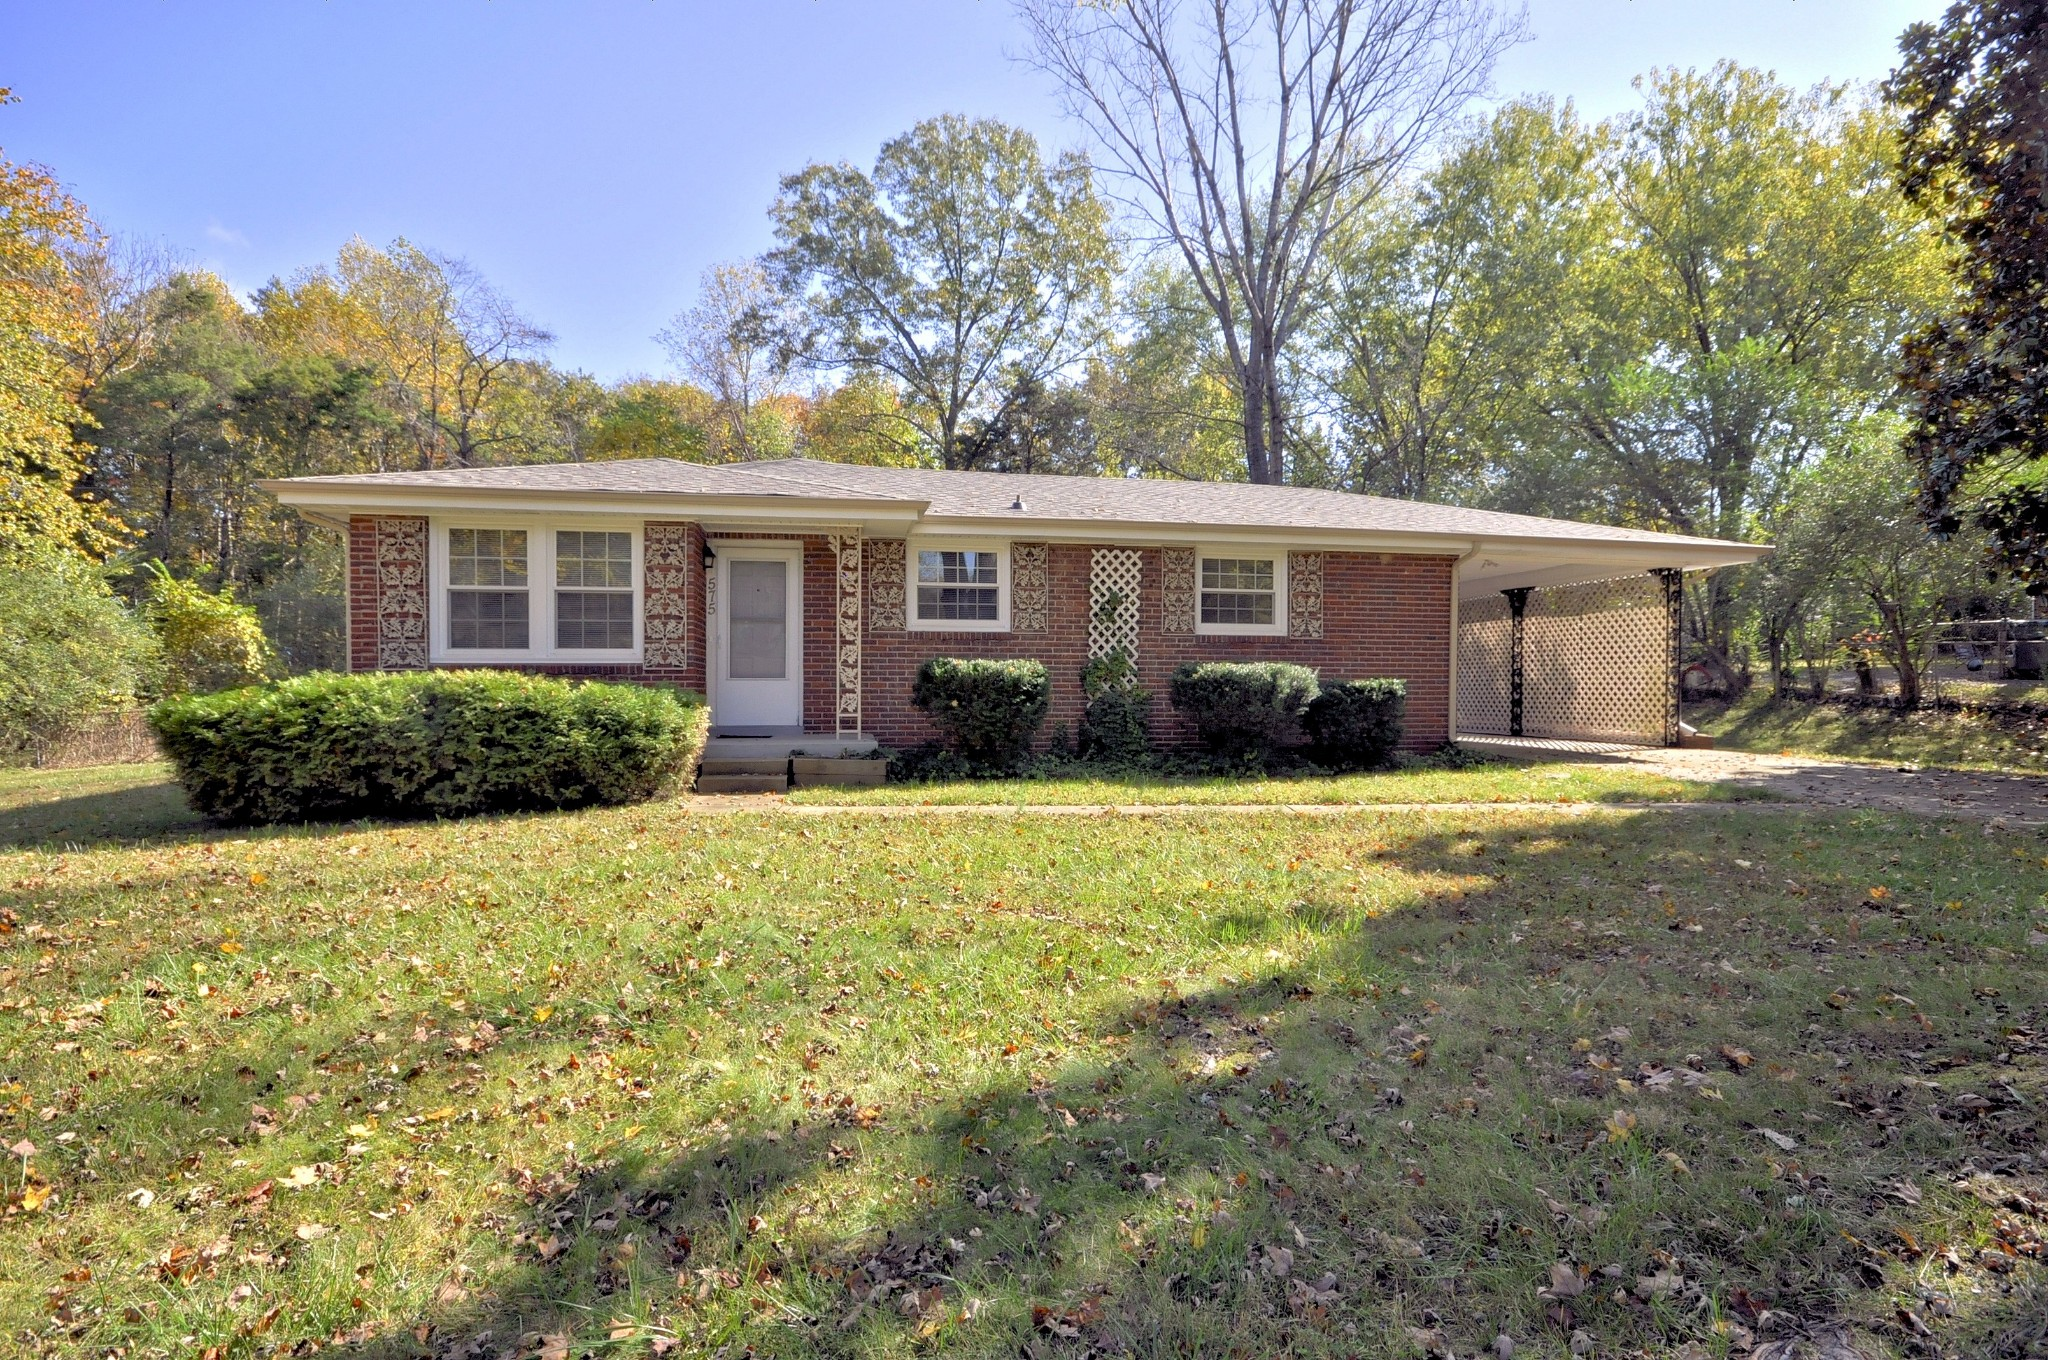 575 ROSEHILL DR Property Photo - Clarksville, TN real estate listing